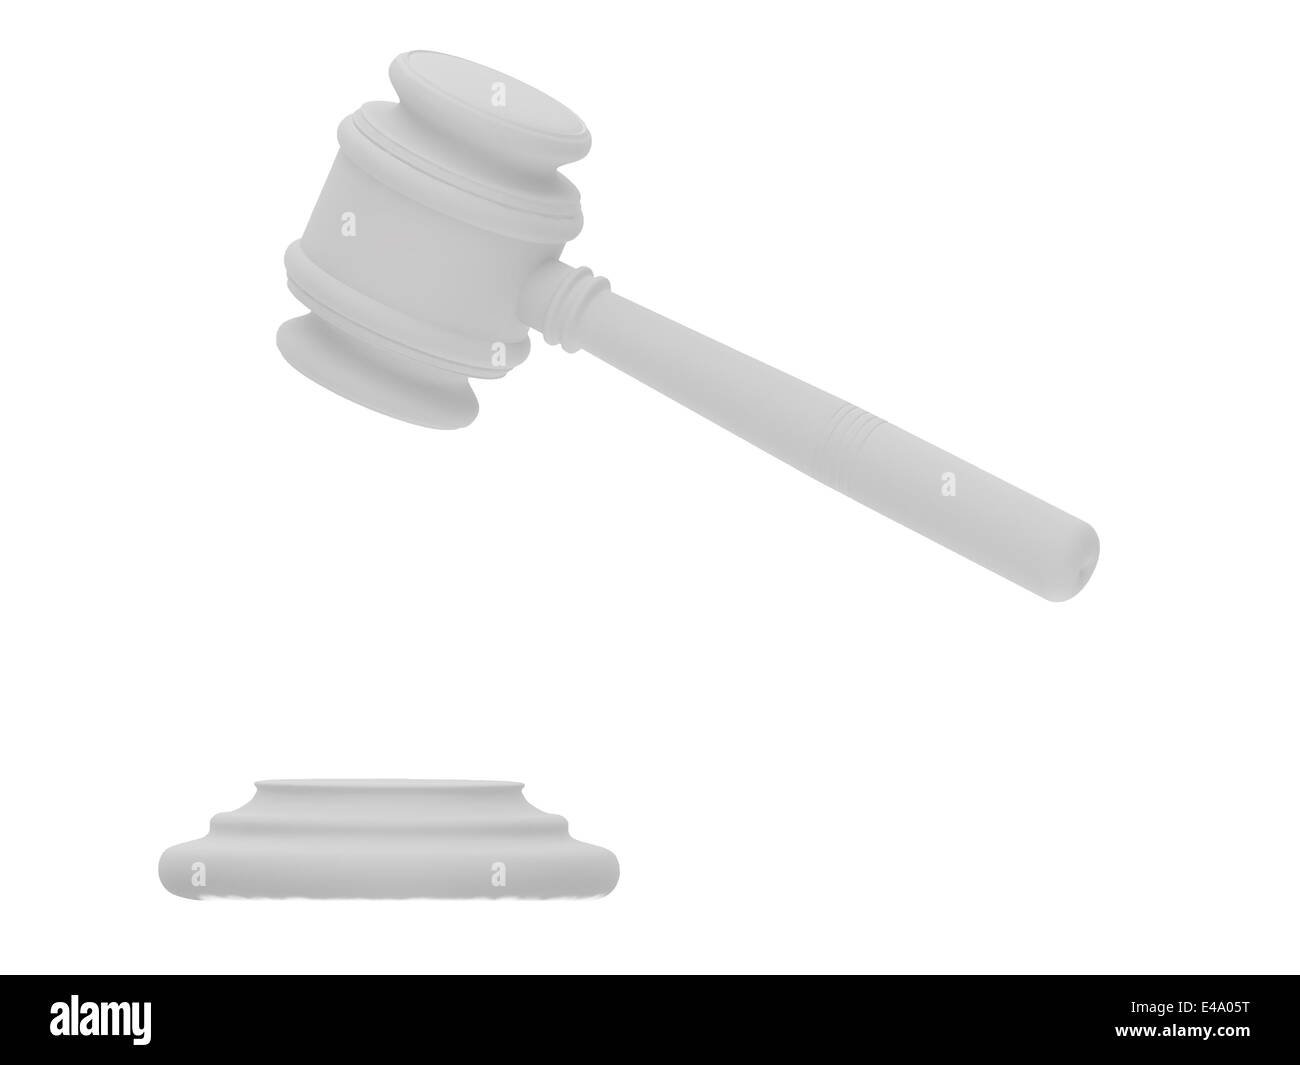 Anvil of the justice - Stock Image